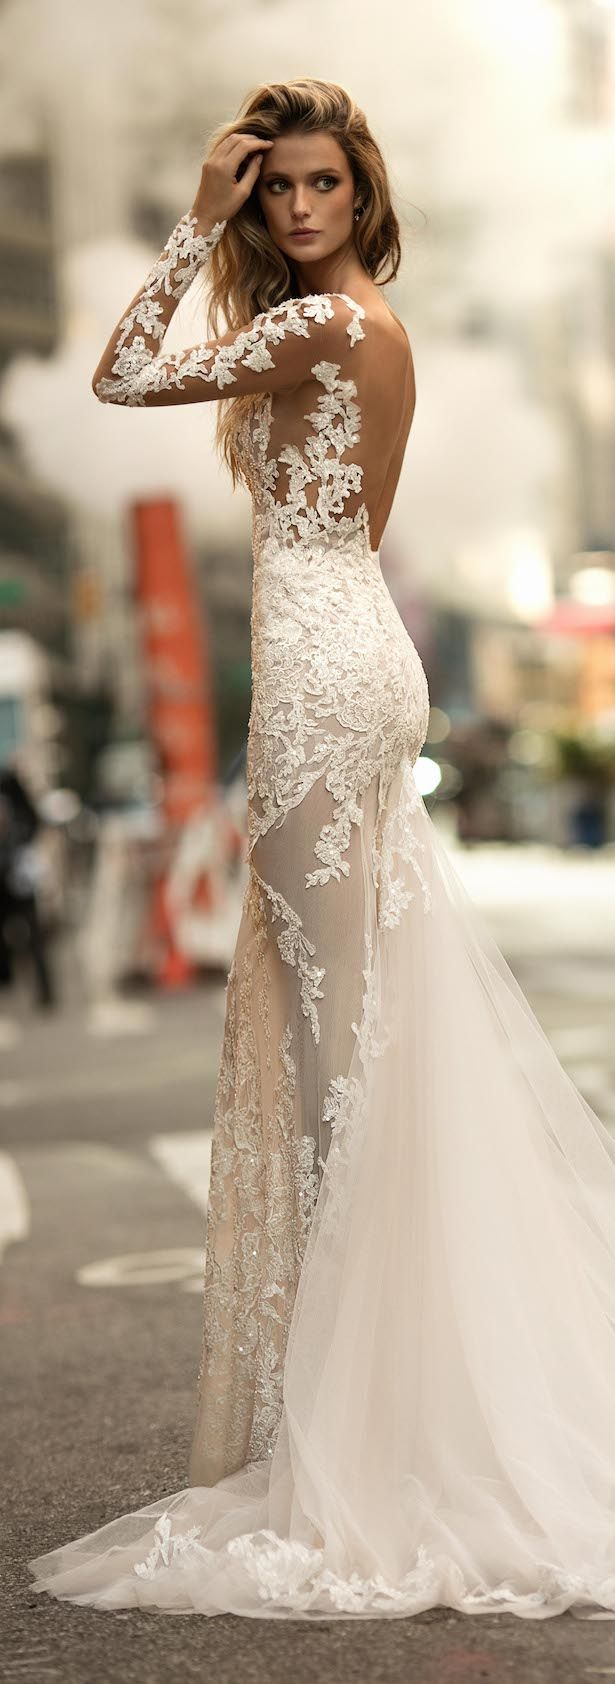 Pinterest fashion wedding dresses